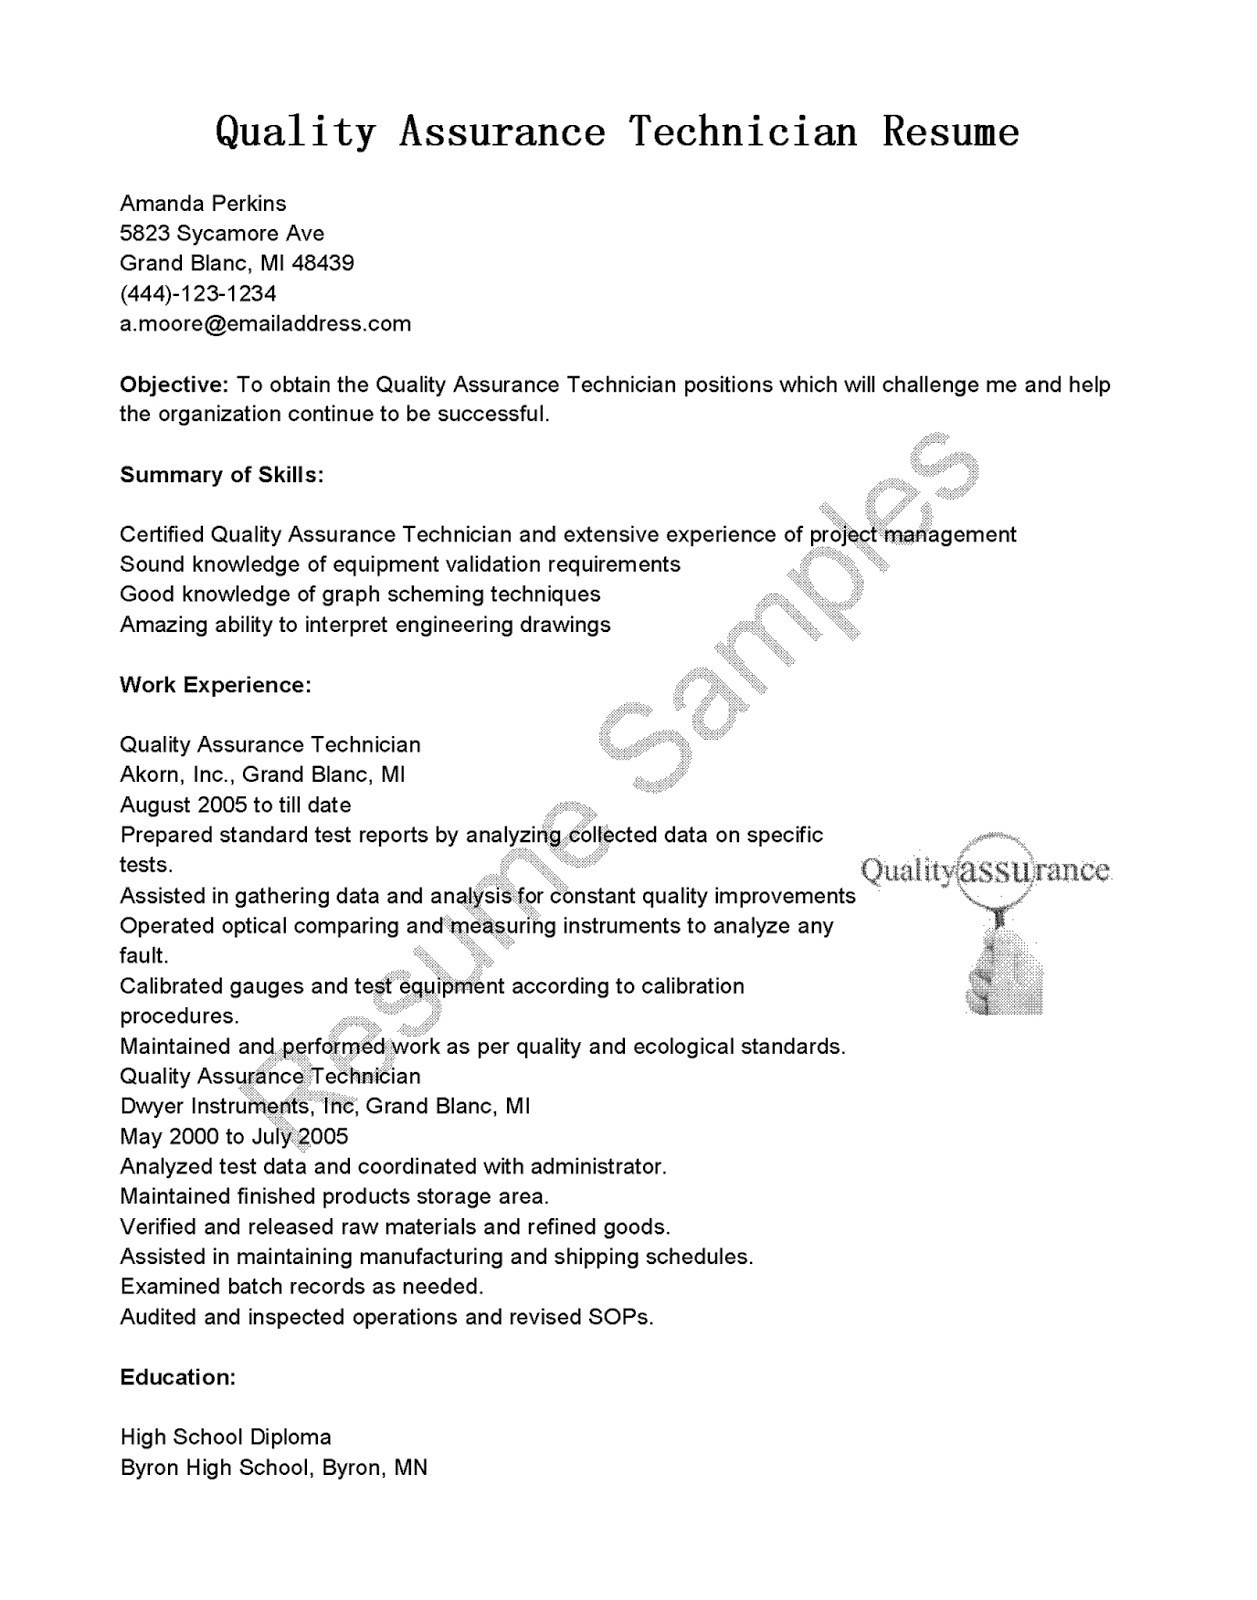 Looking for Resumes - High School Sample Cover Letter New Resumes and Cover Letters